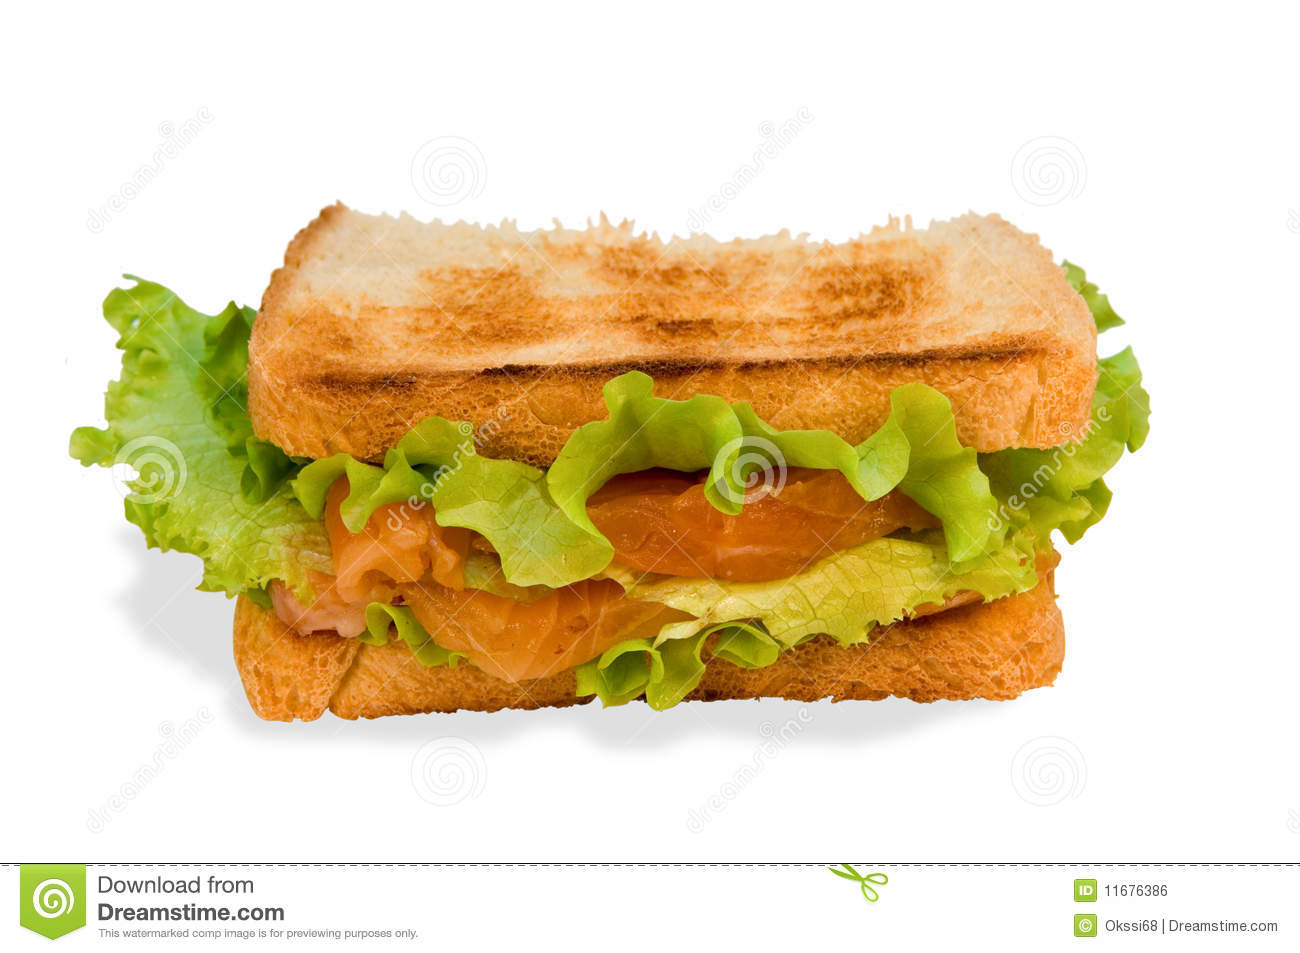 how to cut lettuce for sandwiches